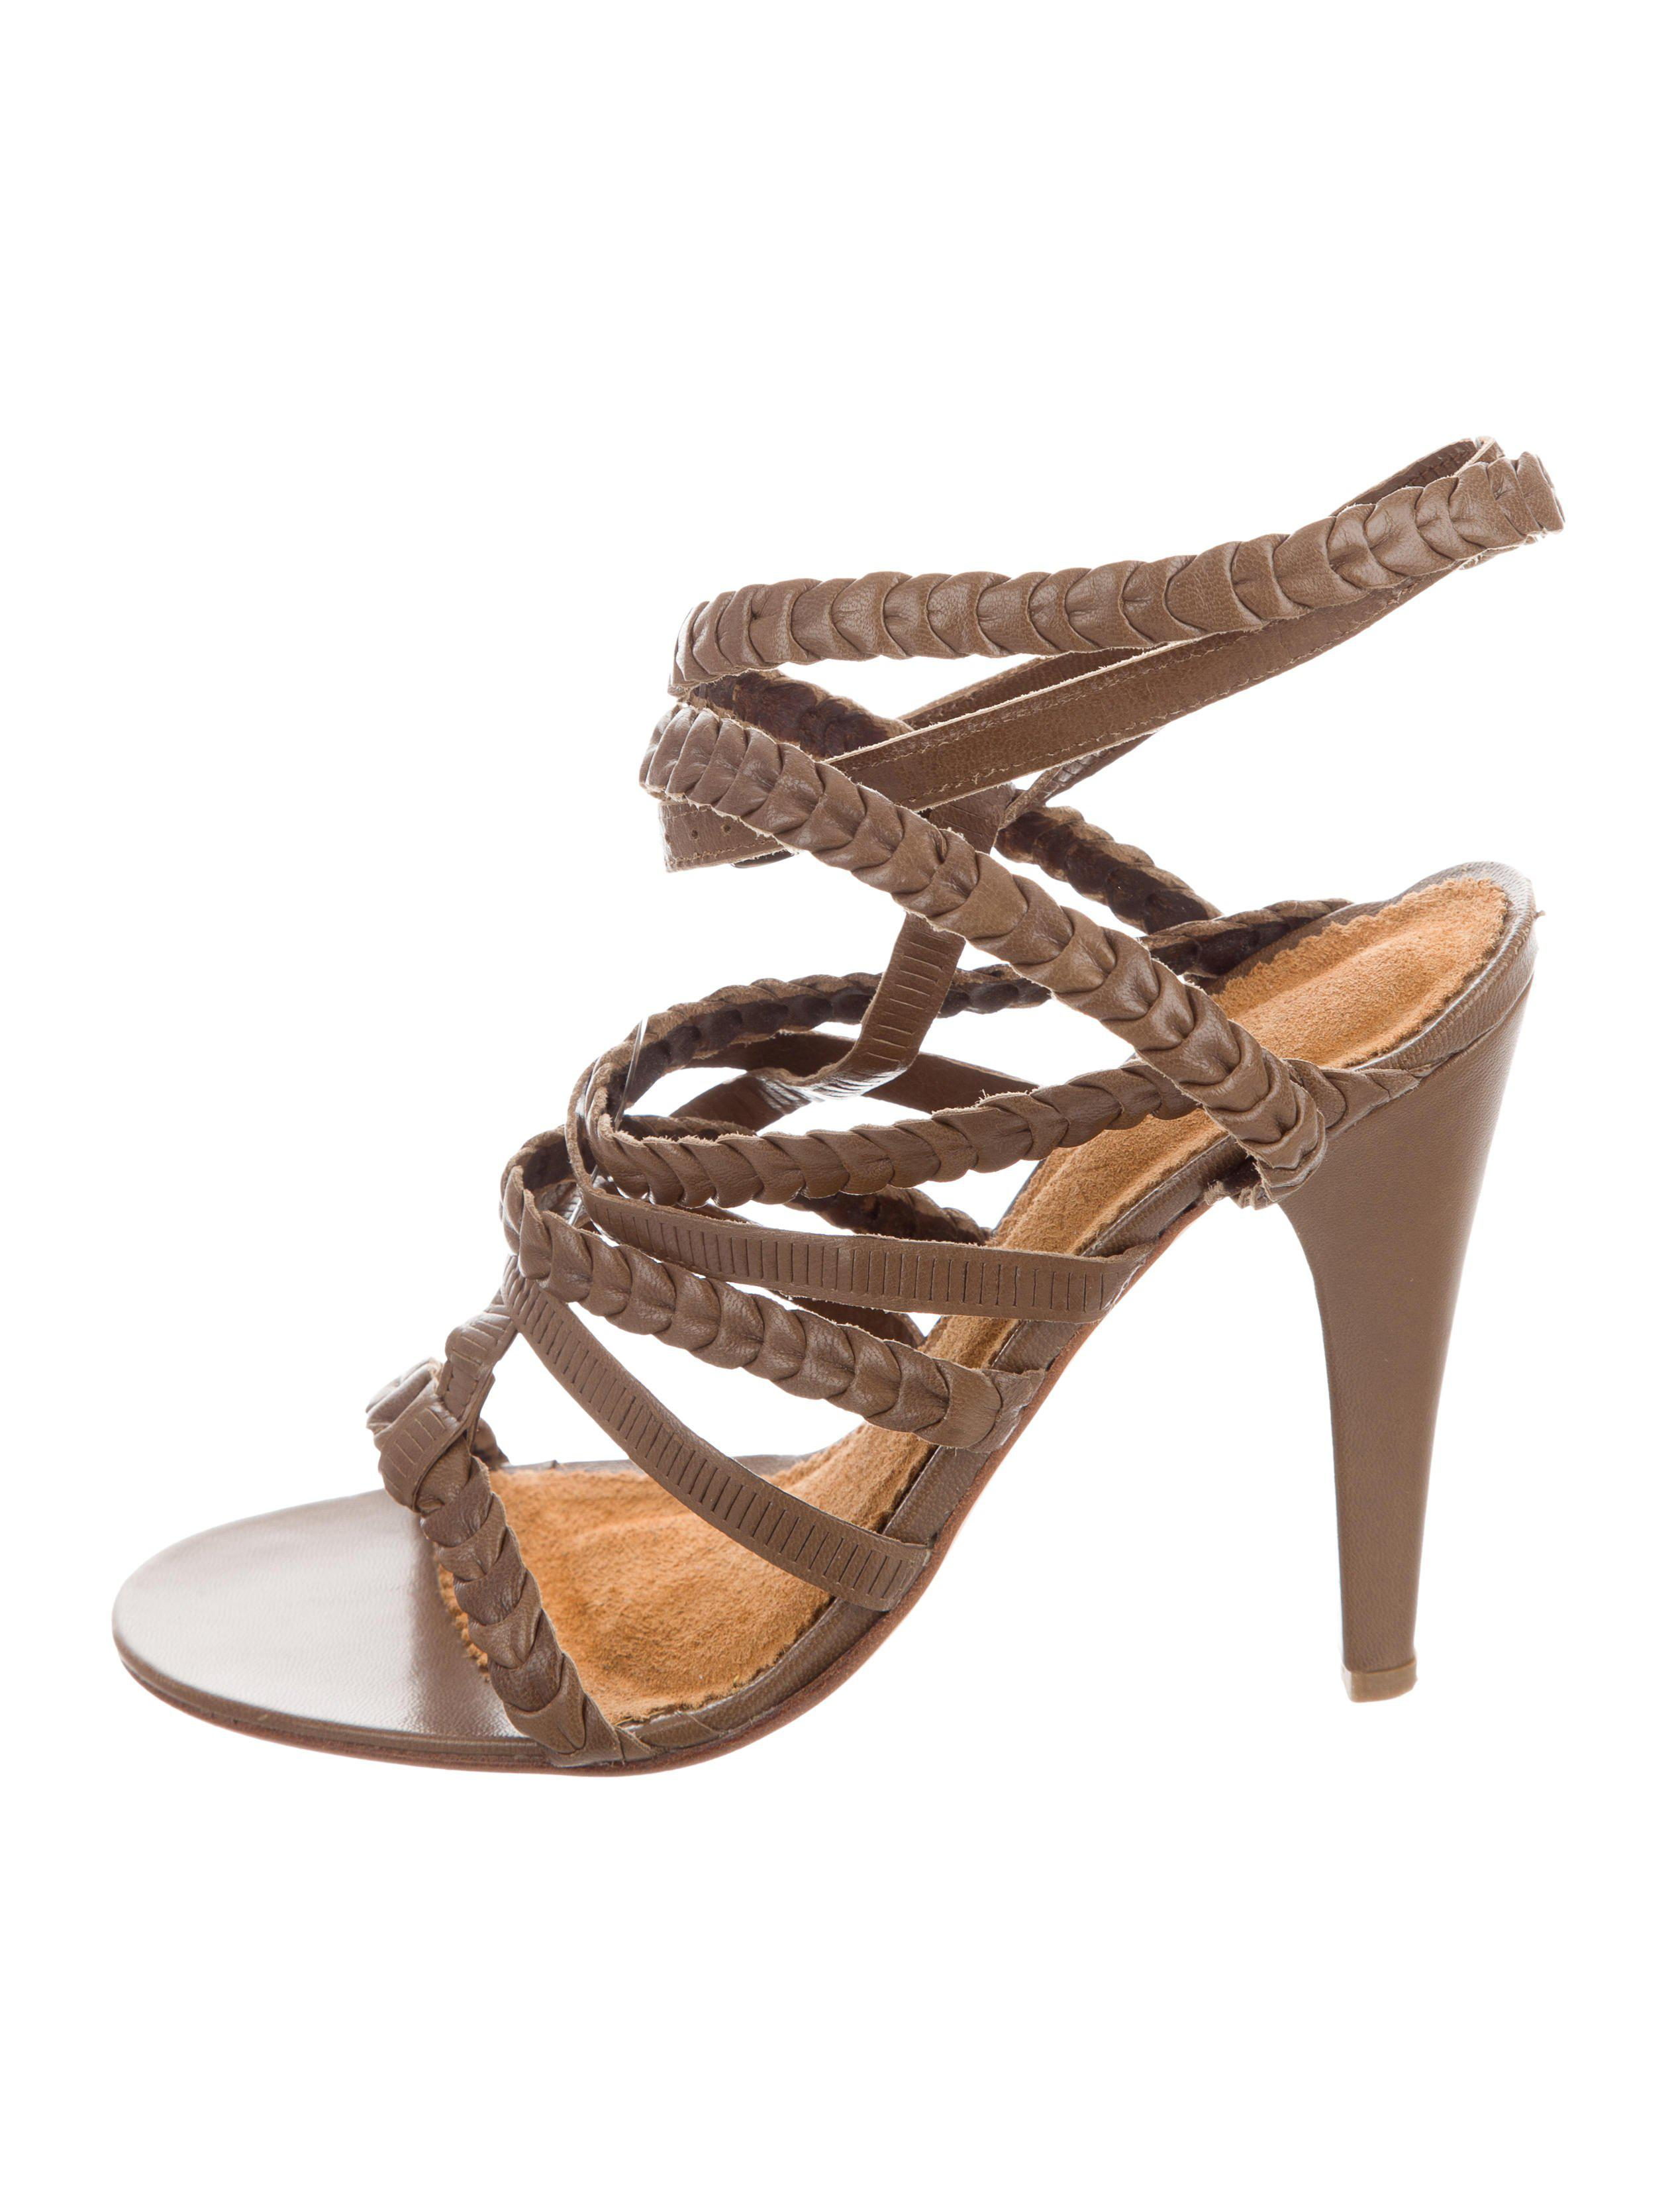 Isabel Marant Woven Leather Sandals 100% authentic for sale discount choice MqbxIU8